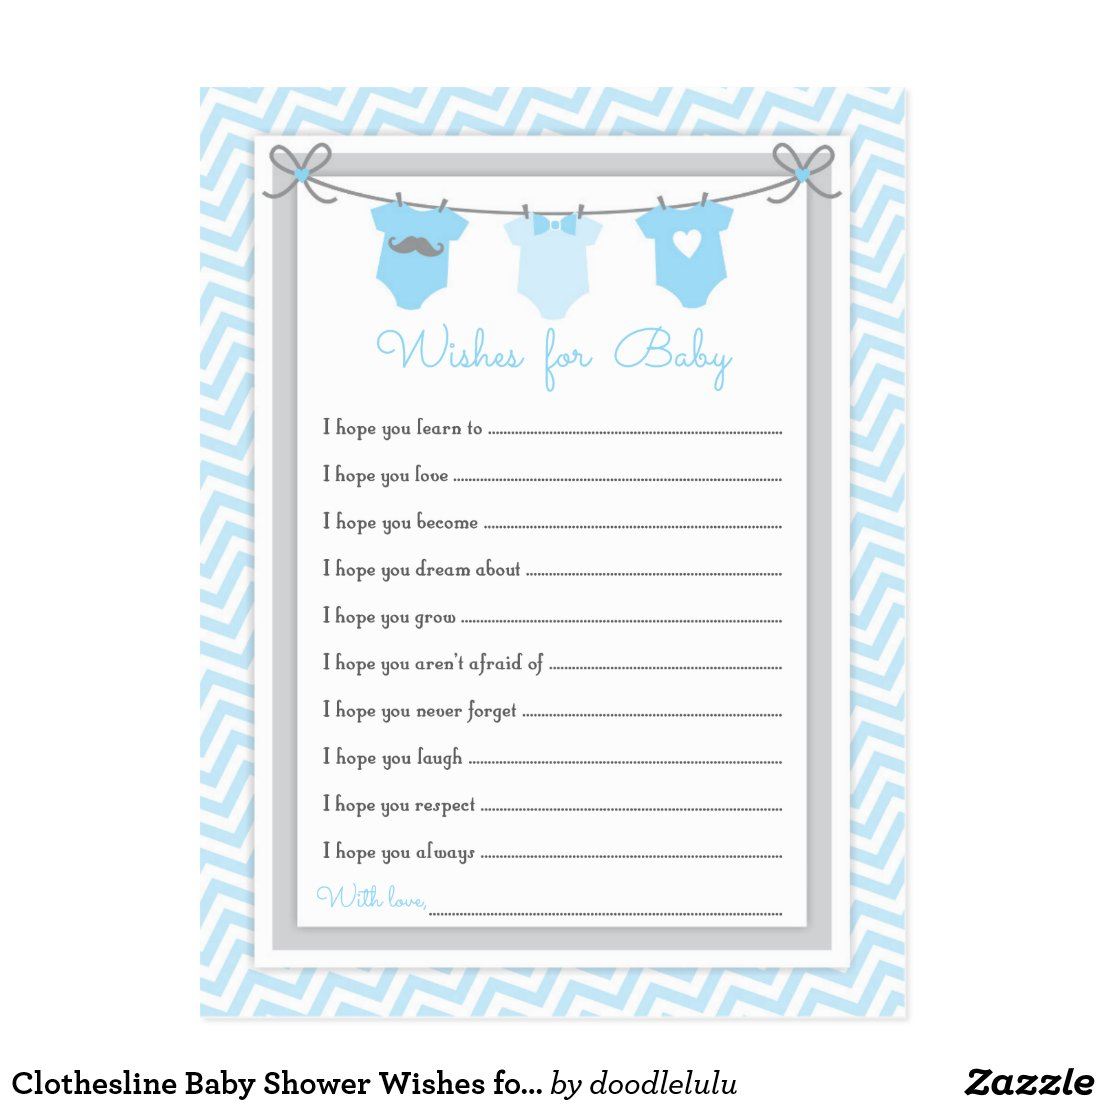 Clothesline Baby Shower Wishes for Baby blue-gray Postcard